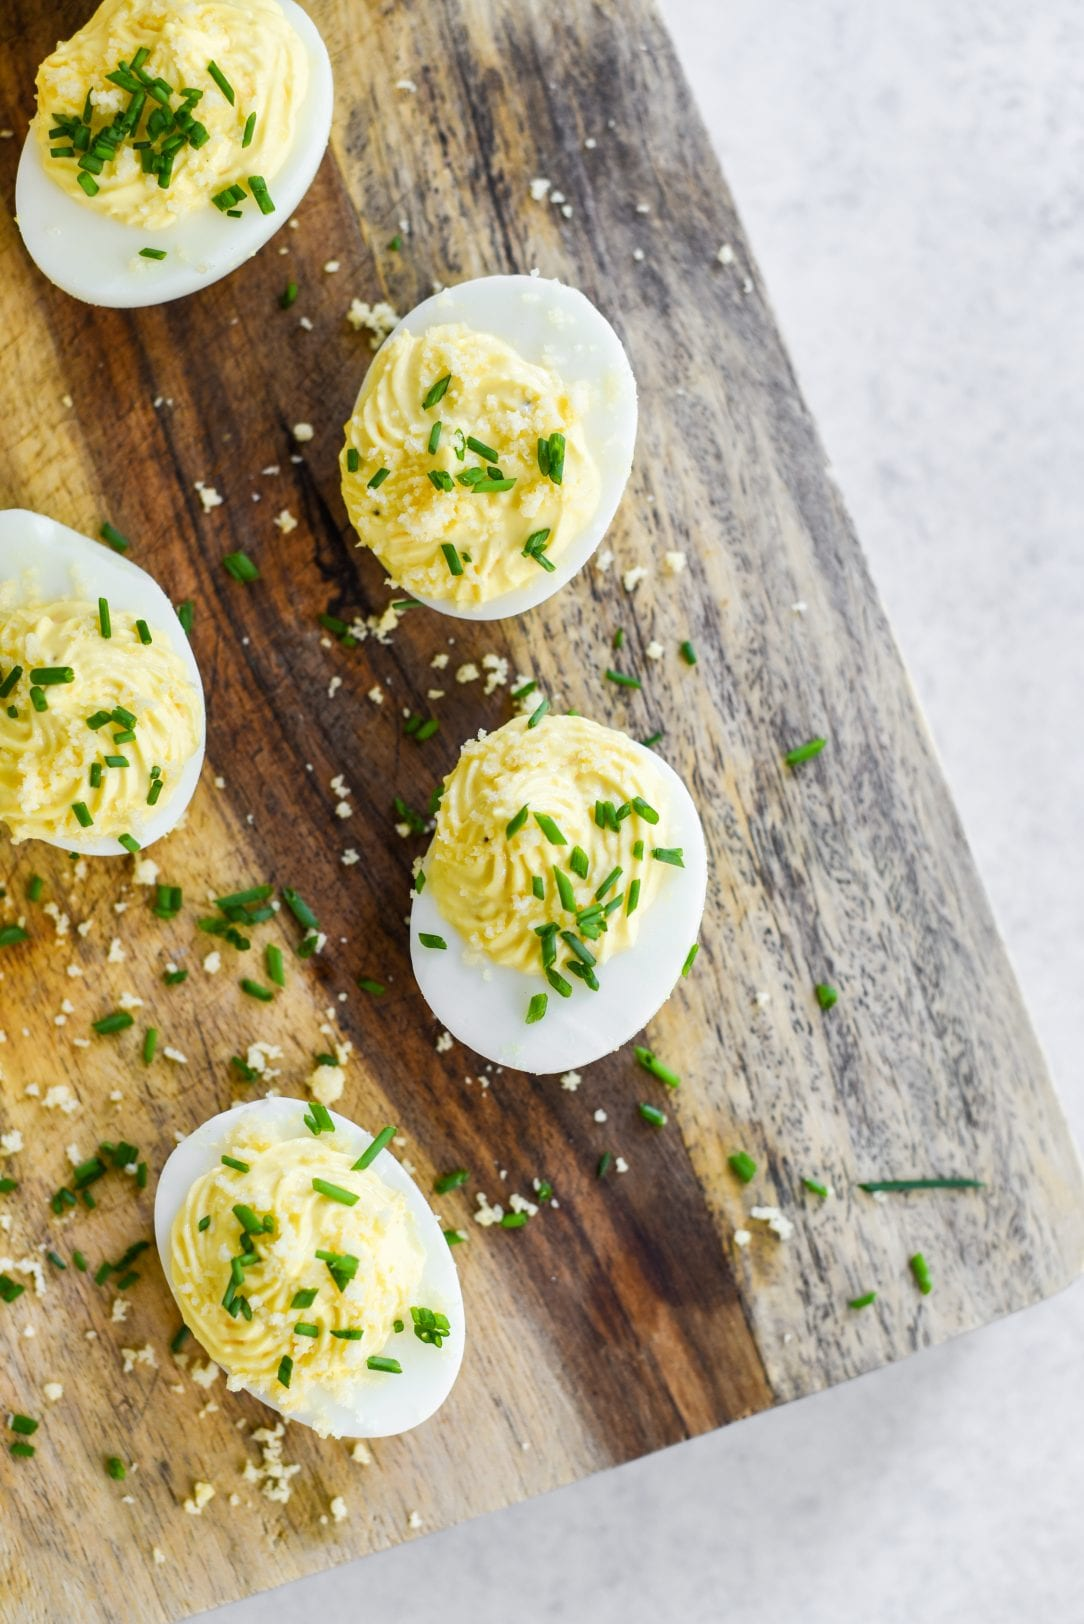 Sour Cream and Cheddar Deviled Eggs